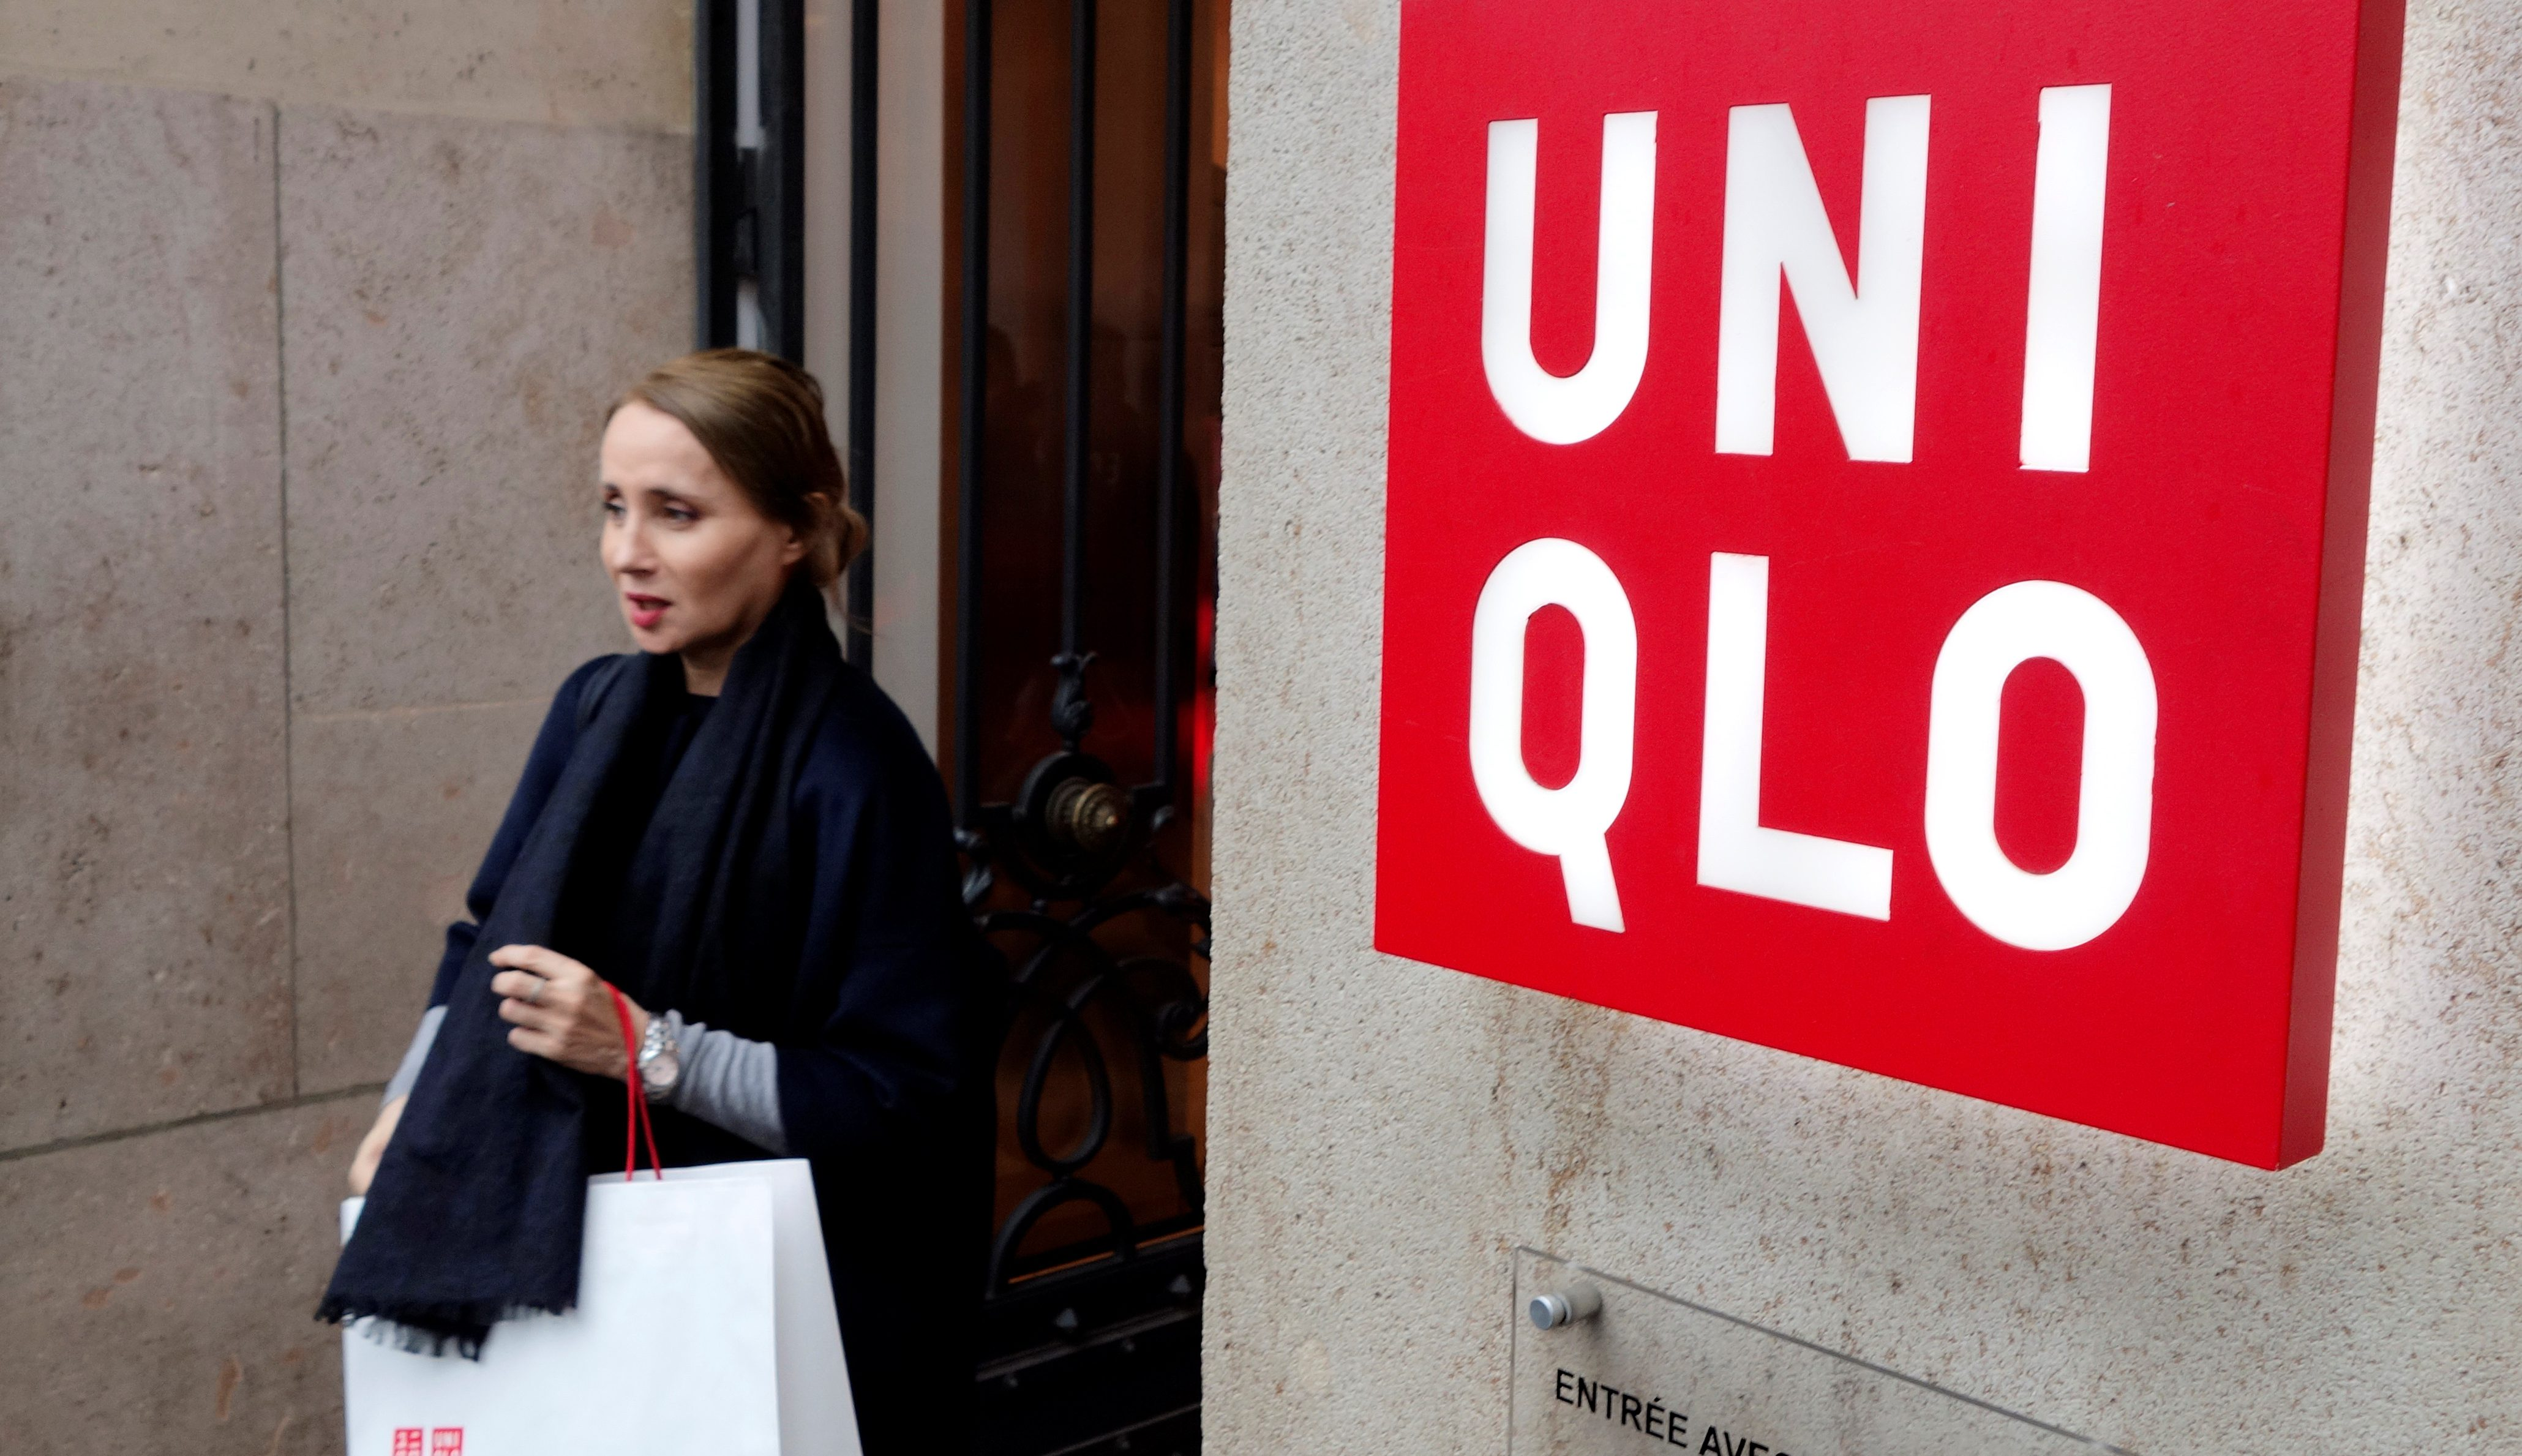 A customer leaves the casual clothing store Uniqlo operated by Japan's Fast Retailing in Paris, France October 24, 2016.  REUTERS/Charles Platiau  - D1BEUKDBFAAB